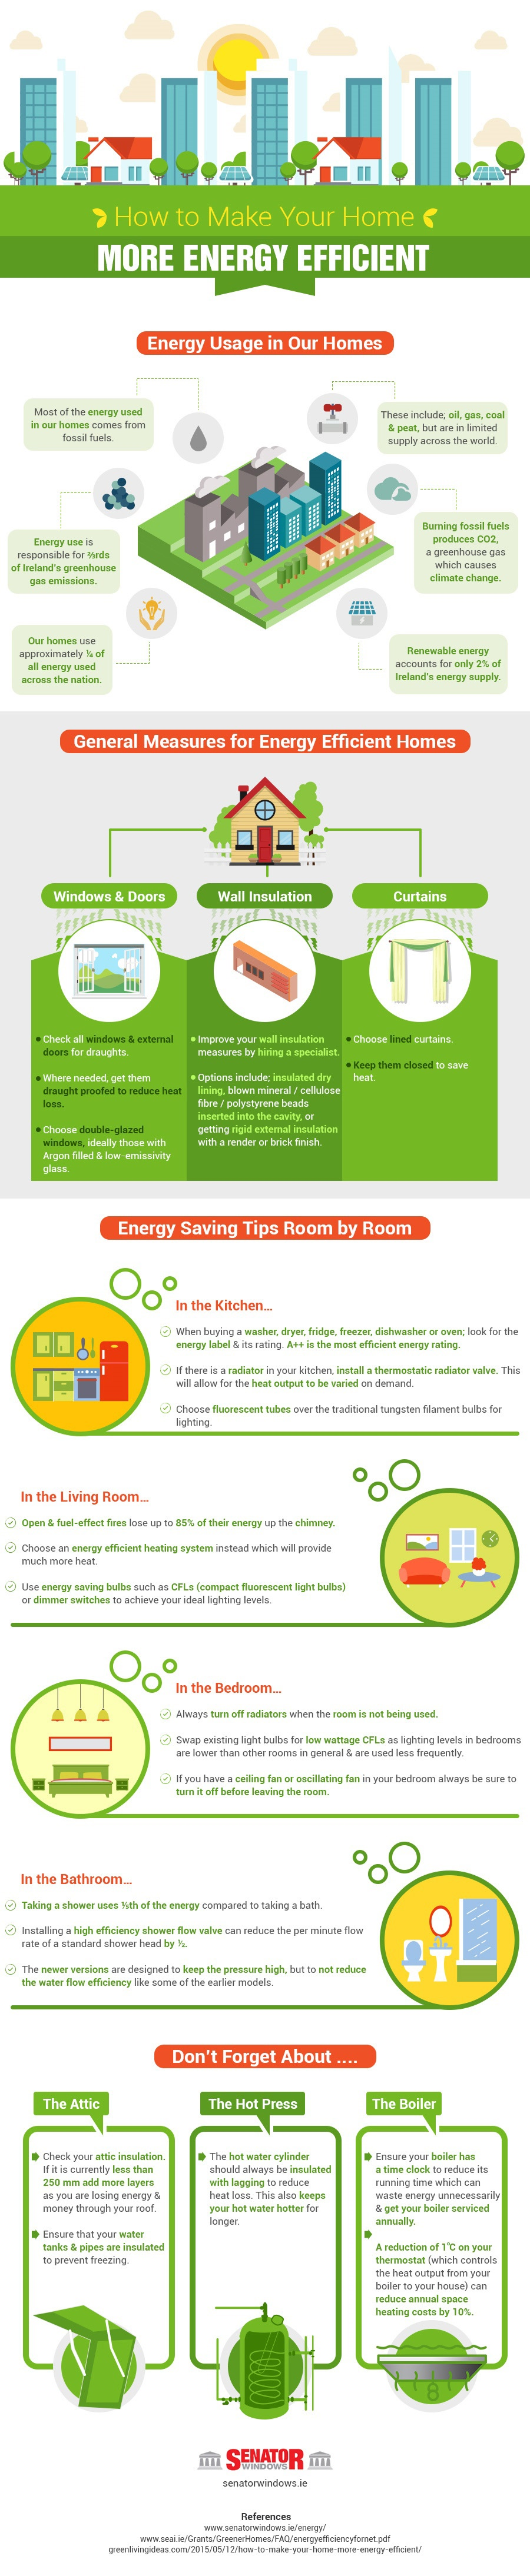 Make Your Home More Energy Efficient [Infographic]   ecogreenlove